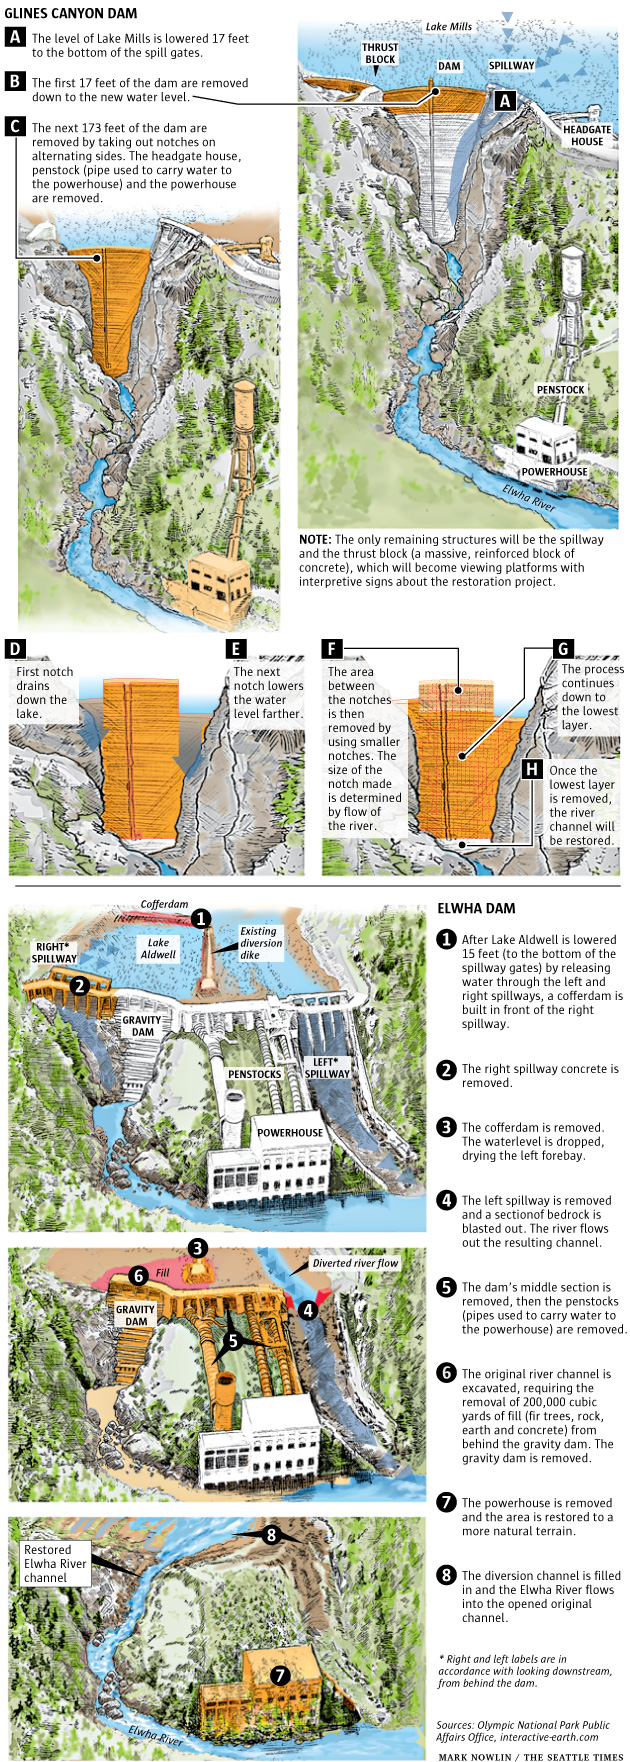 How the Elwha River dams will be removed